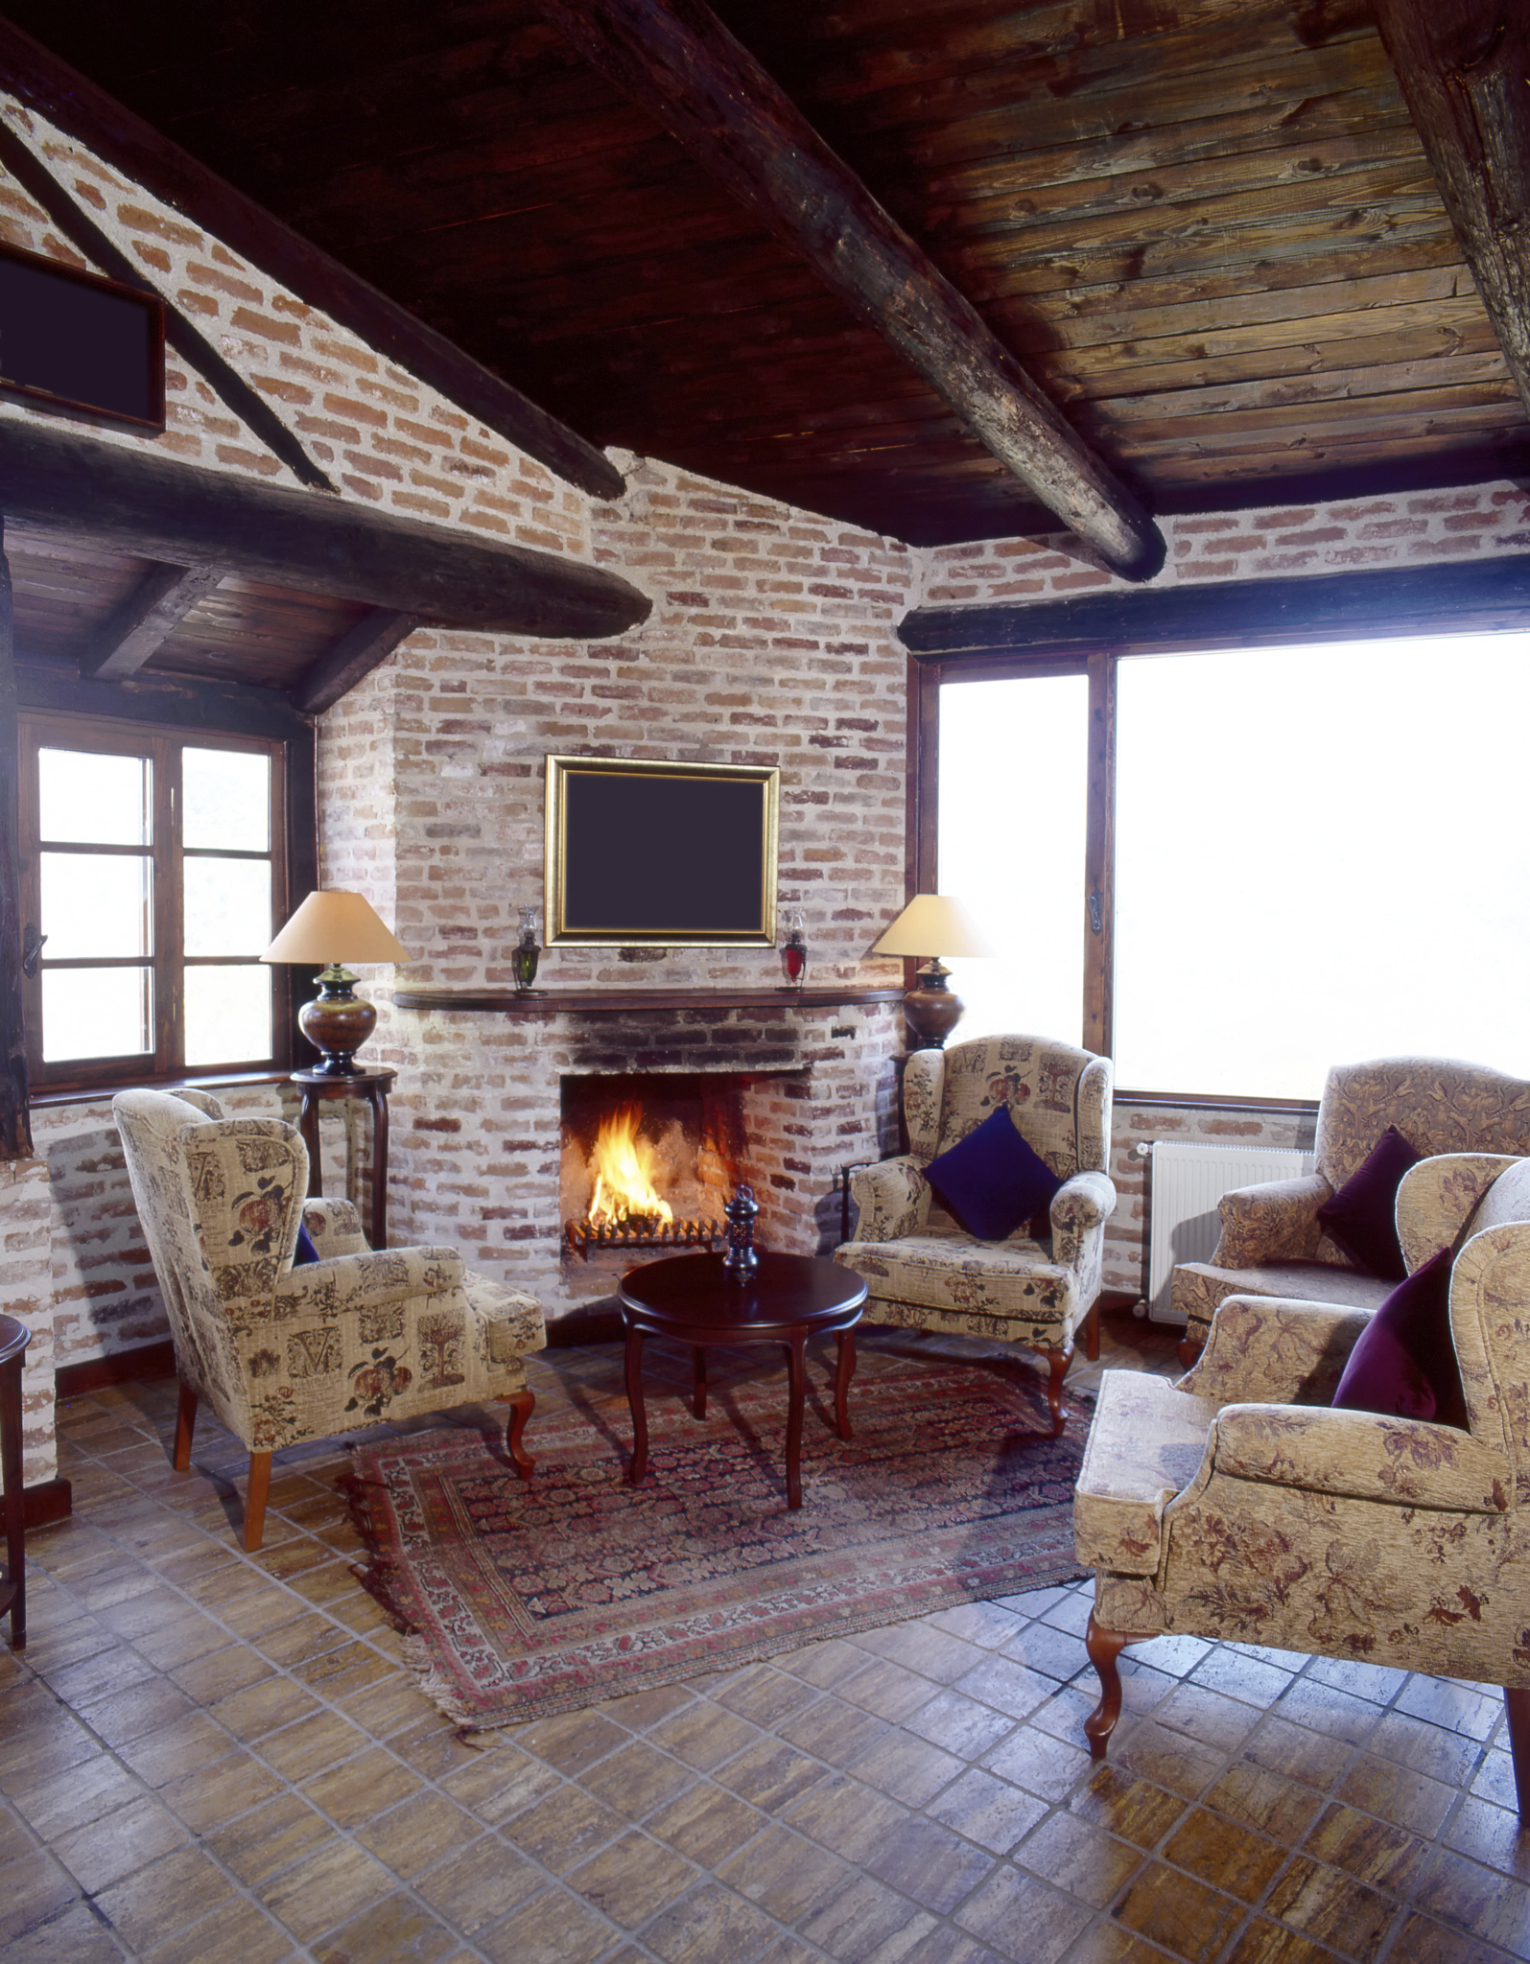 Brick Fireplace In A Rustic Room